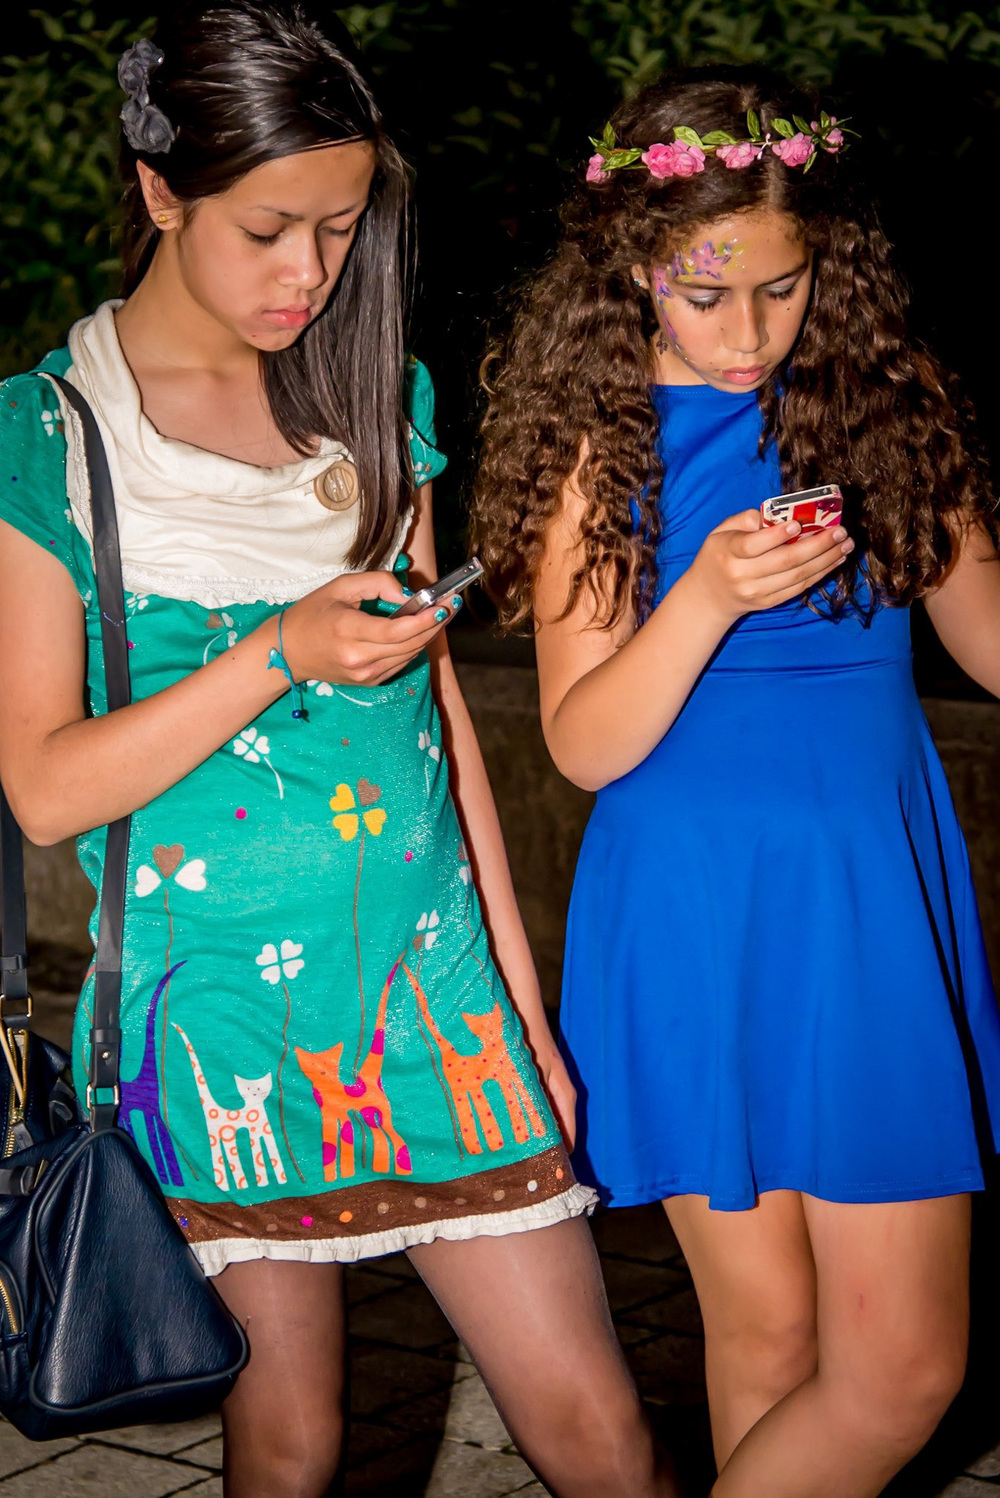 Teenagers phone-agers.